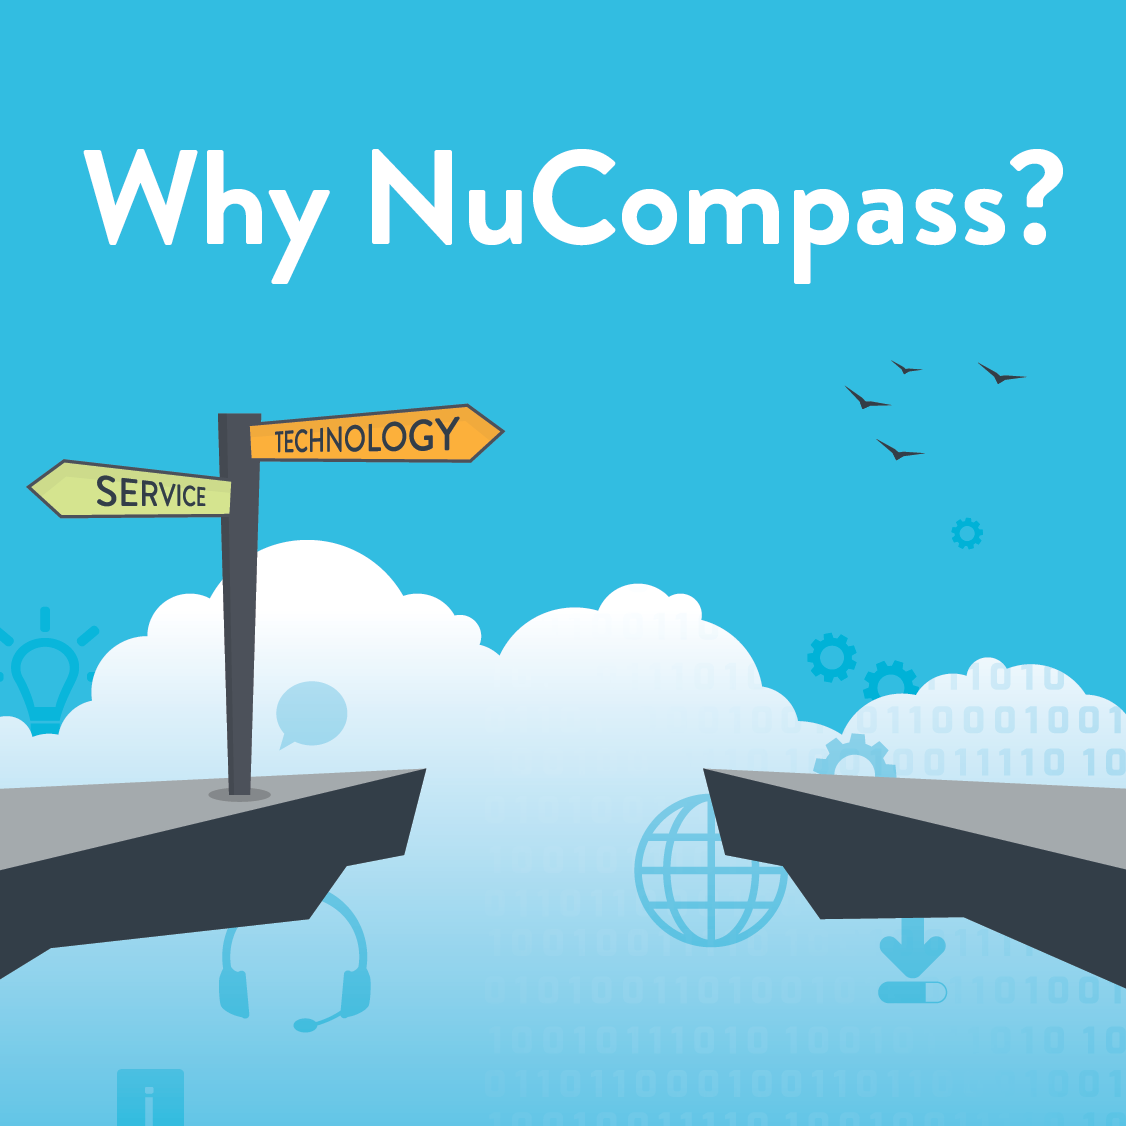 Why NuCompass?